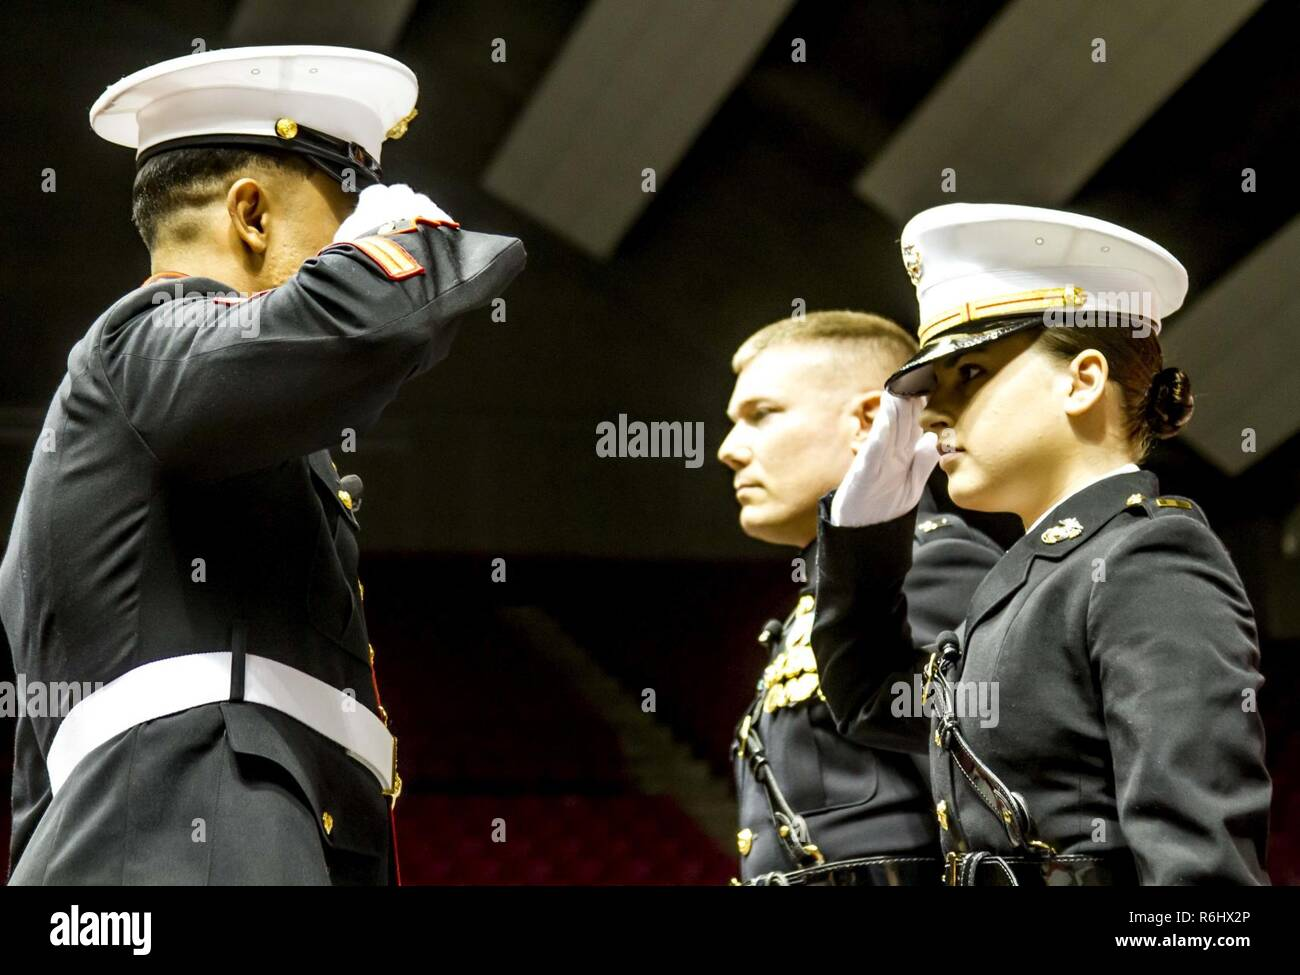 "Second Lieutenant Mary Sanders receives her first salute as a Marine Corps officer from Staff Sgt. Ibrahim Attya, a former member of the officer selection team for Recruiting Station Montgomery, during her commissioning ceremony at Coleman Coliseum, May 12, 2017. Sanders is a recent graduate of Alabama State University and attended Platoon Leaders Course and Officer Candidate School before being commissioned. ""After a couple of weeks I saw how the Marine Corps worked and was hooked. I was so inspired and motivated that if I had any doubts before, they were gone. This was something I wanted to  - Stock Image"